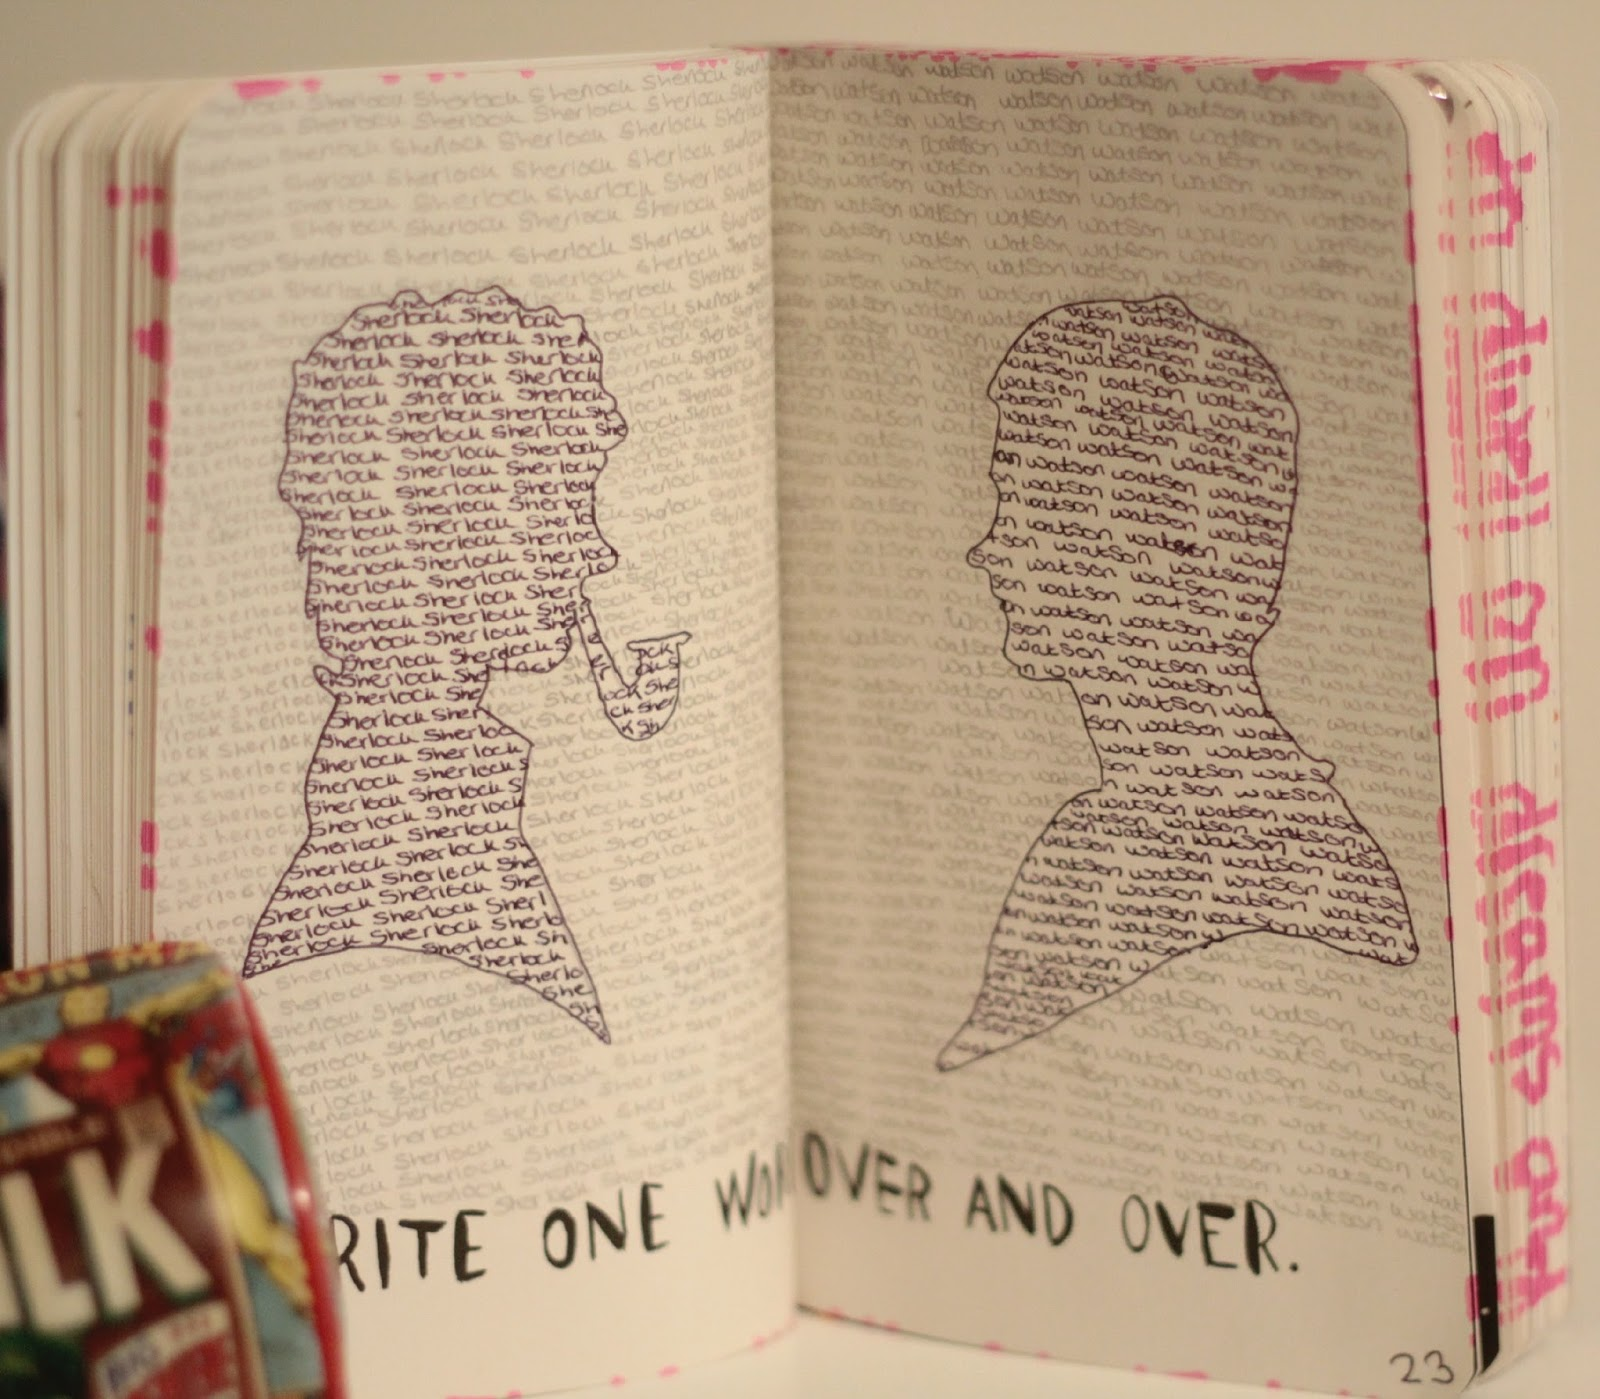 write one word over and over again, wreck it journal with sherlock and watson